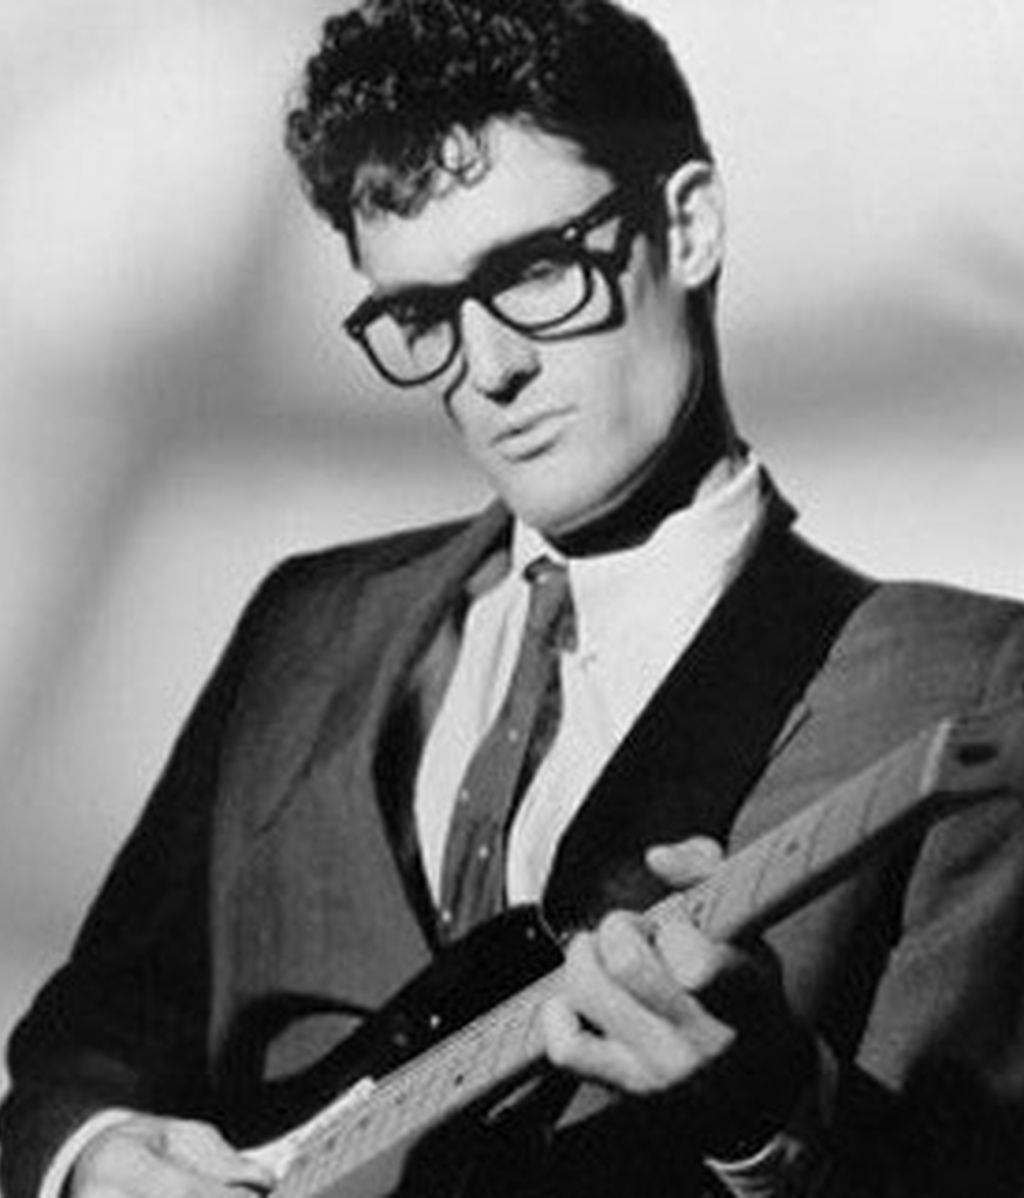 Buddy Holly fue pionero del rock and roll e influencia de músicos contemporáneos.